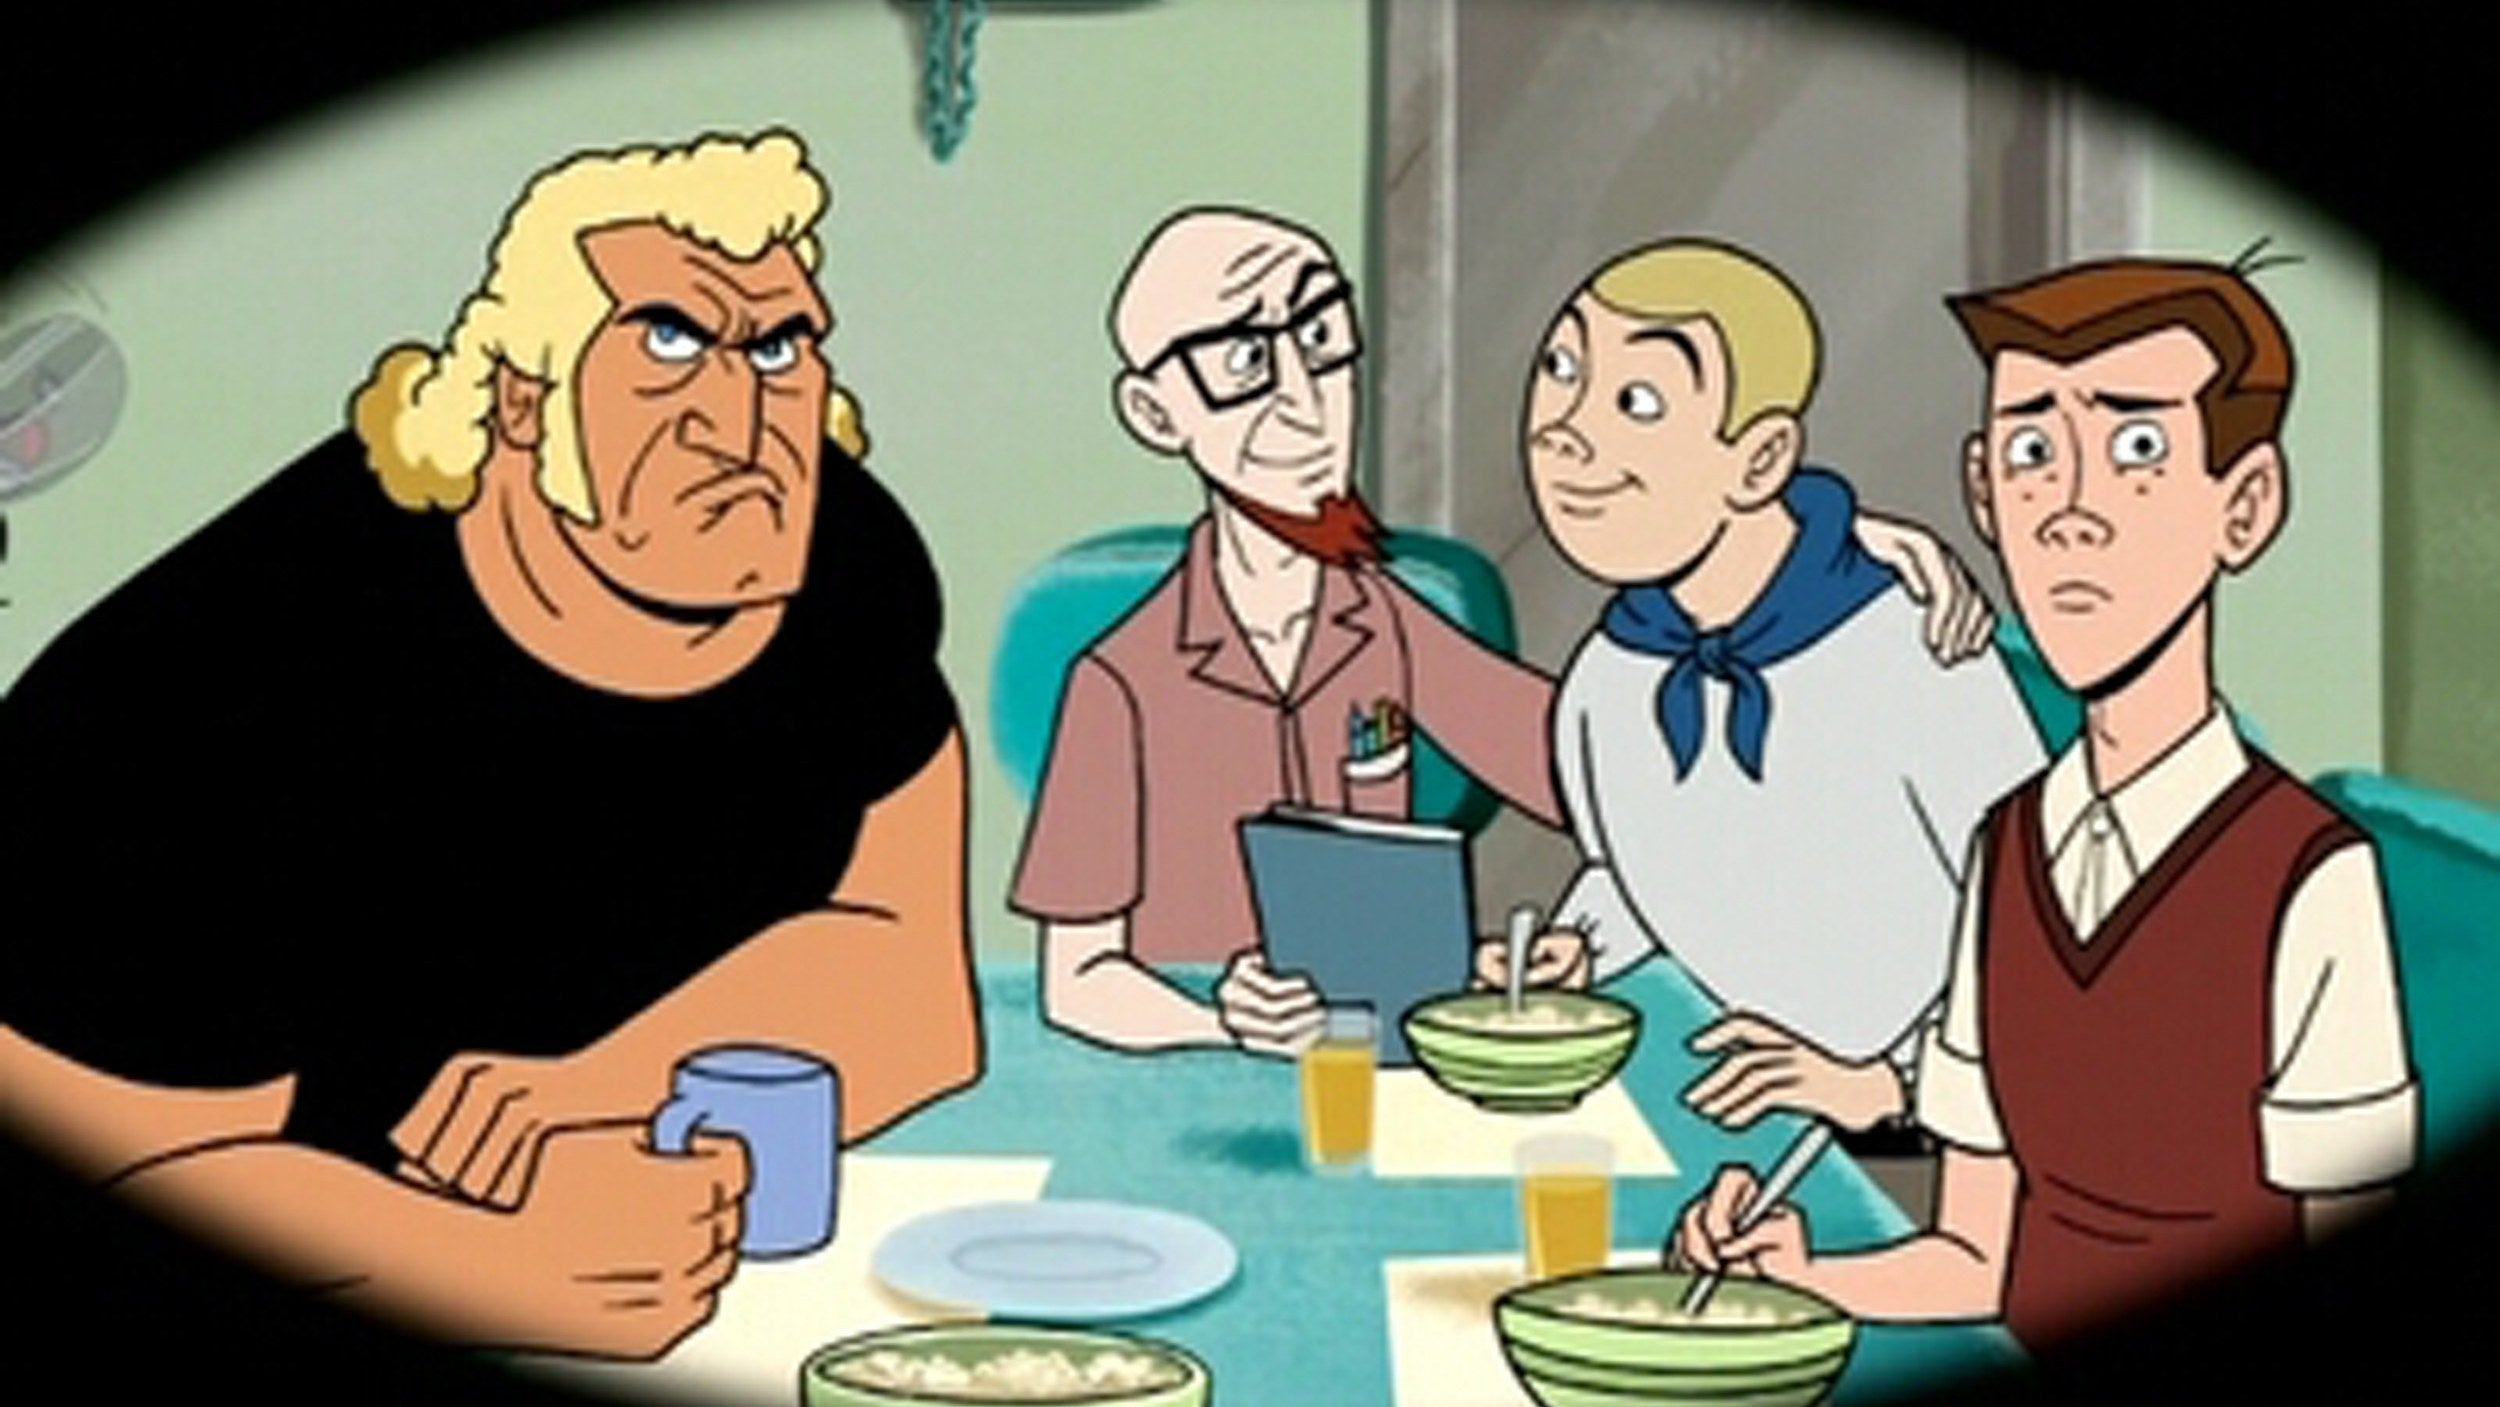 elrddhsjyg0ia4ywzwzg venture bros isn't dead but will take a long time to come back to life